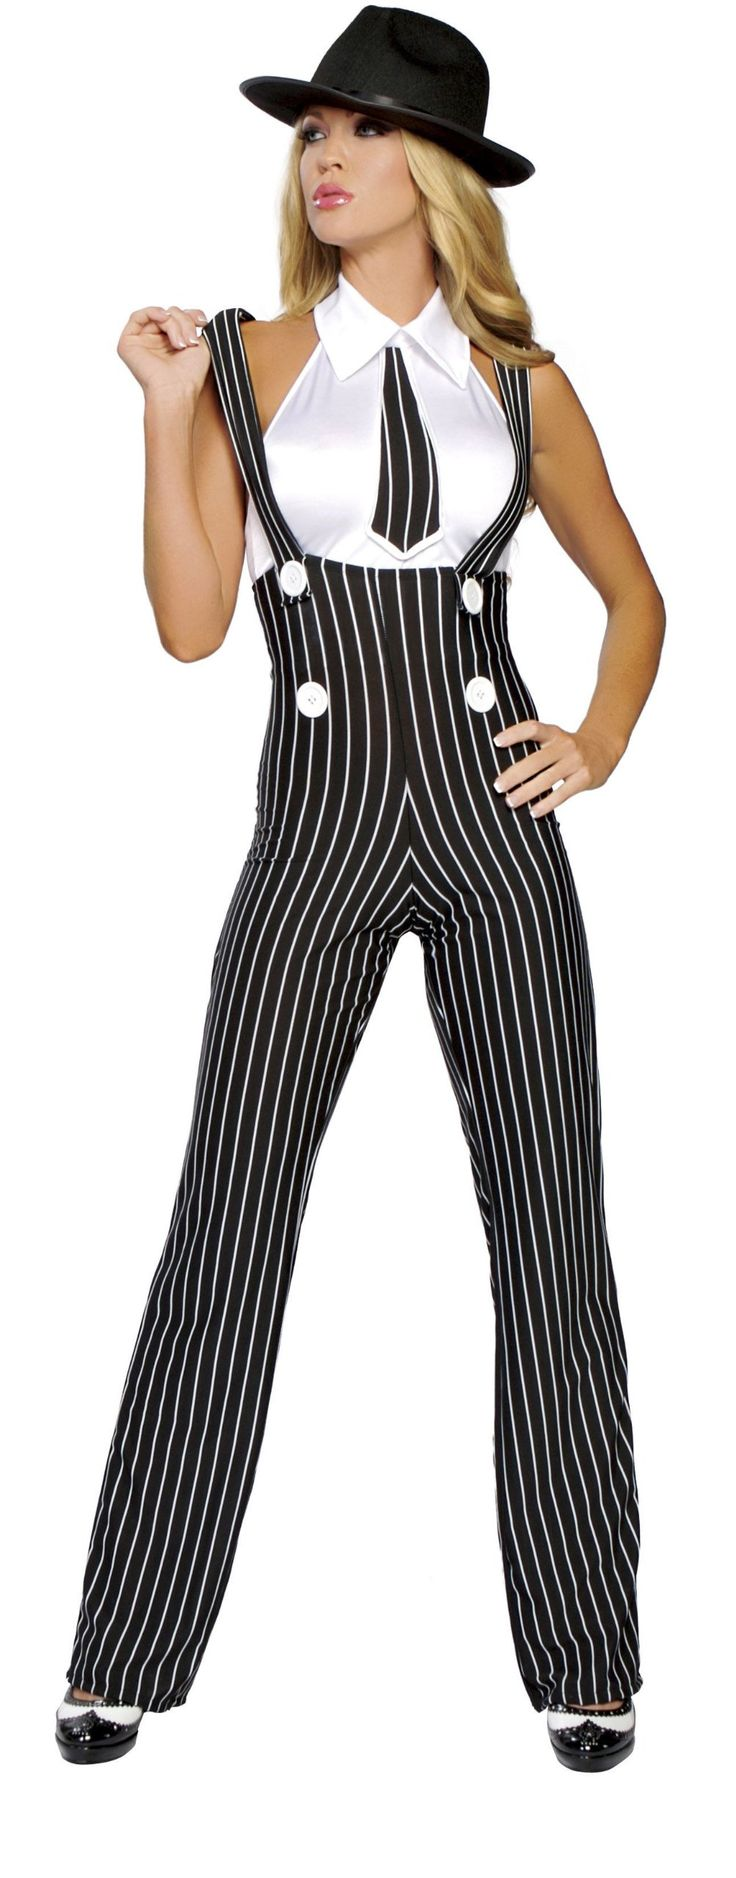 Amazon.com: Roma Costume 2 Piece Gangsta Mama As Shown: Adult Sized Costumes: Clothing